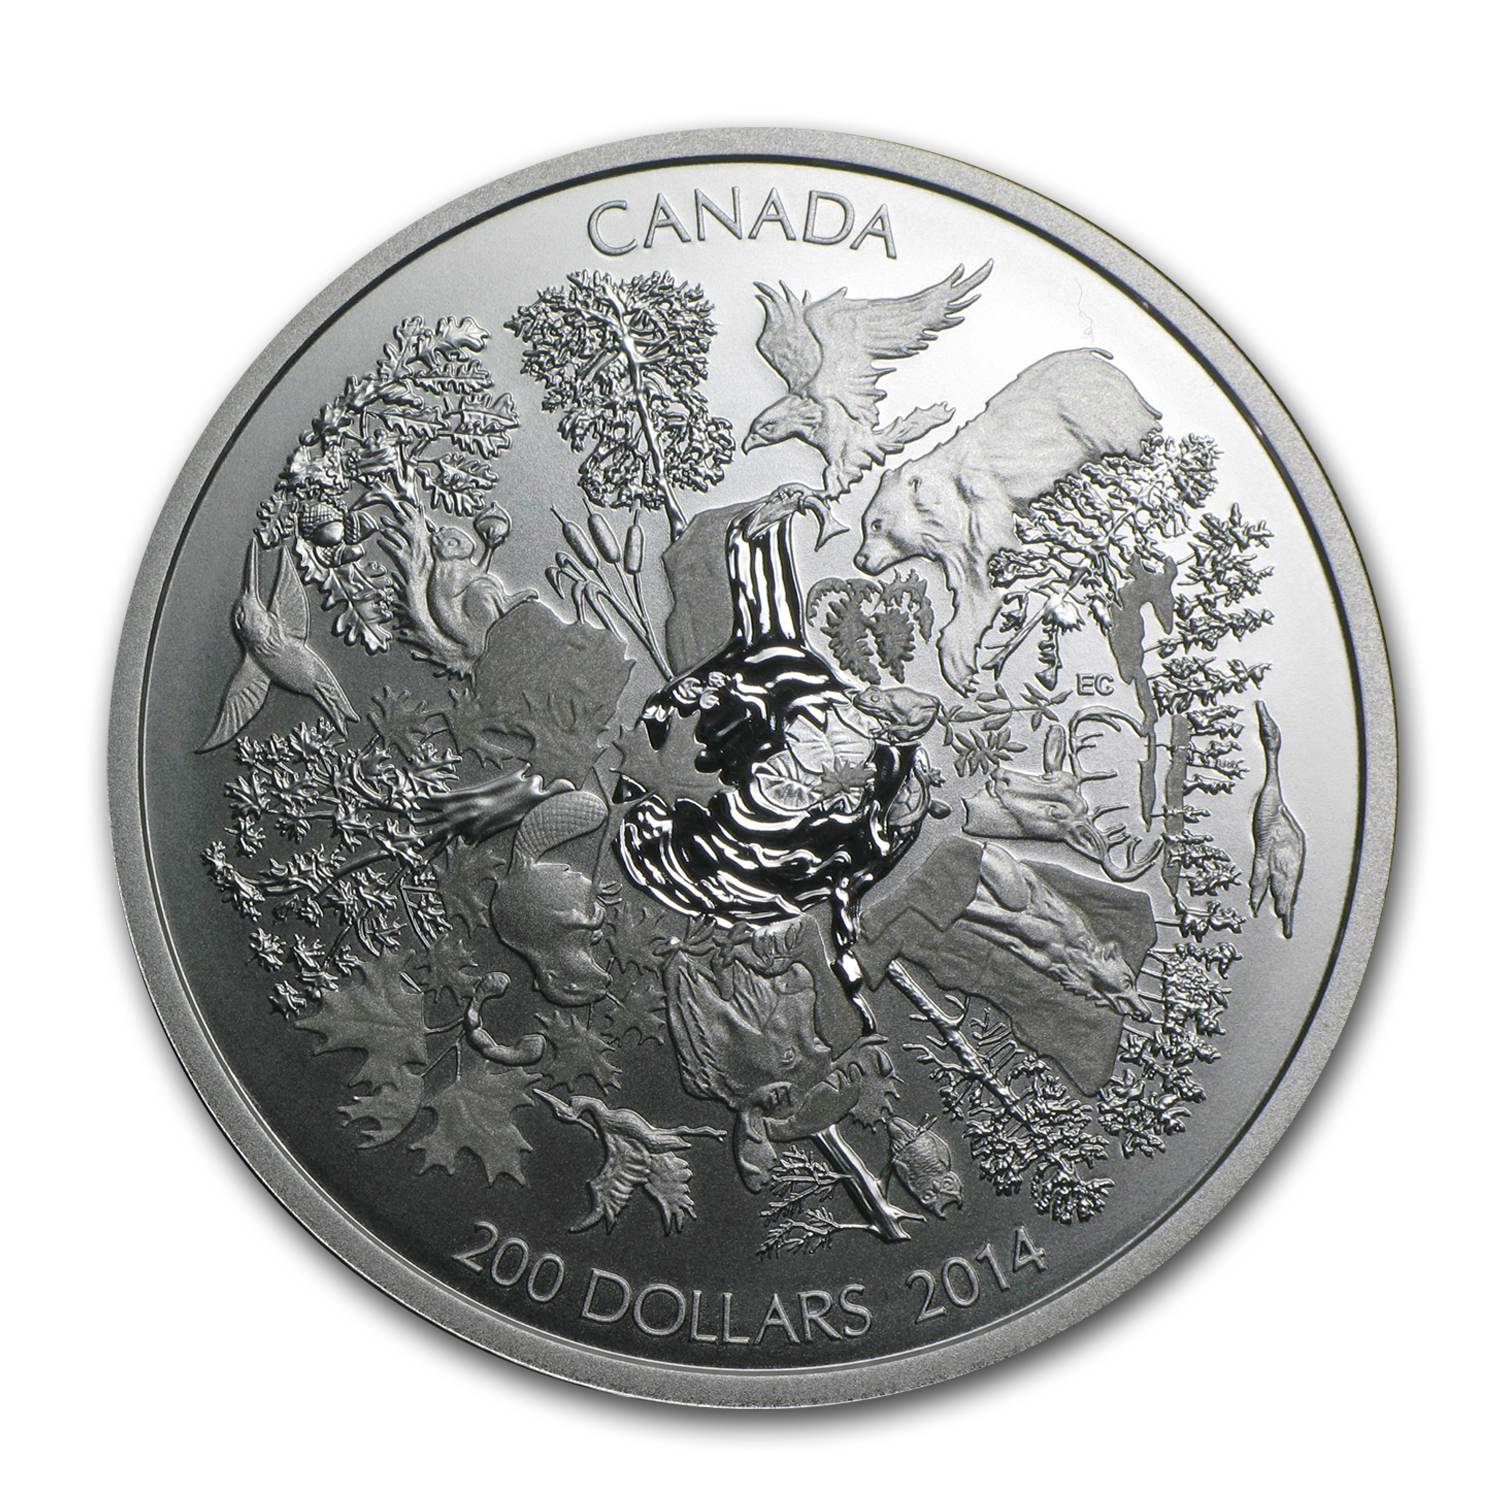 2014 2 oz Silver Canadian $200 Coin Towering Forests of Canada